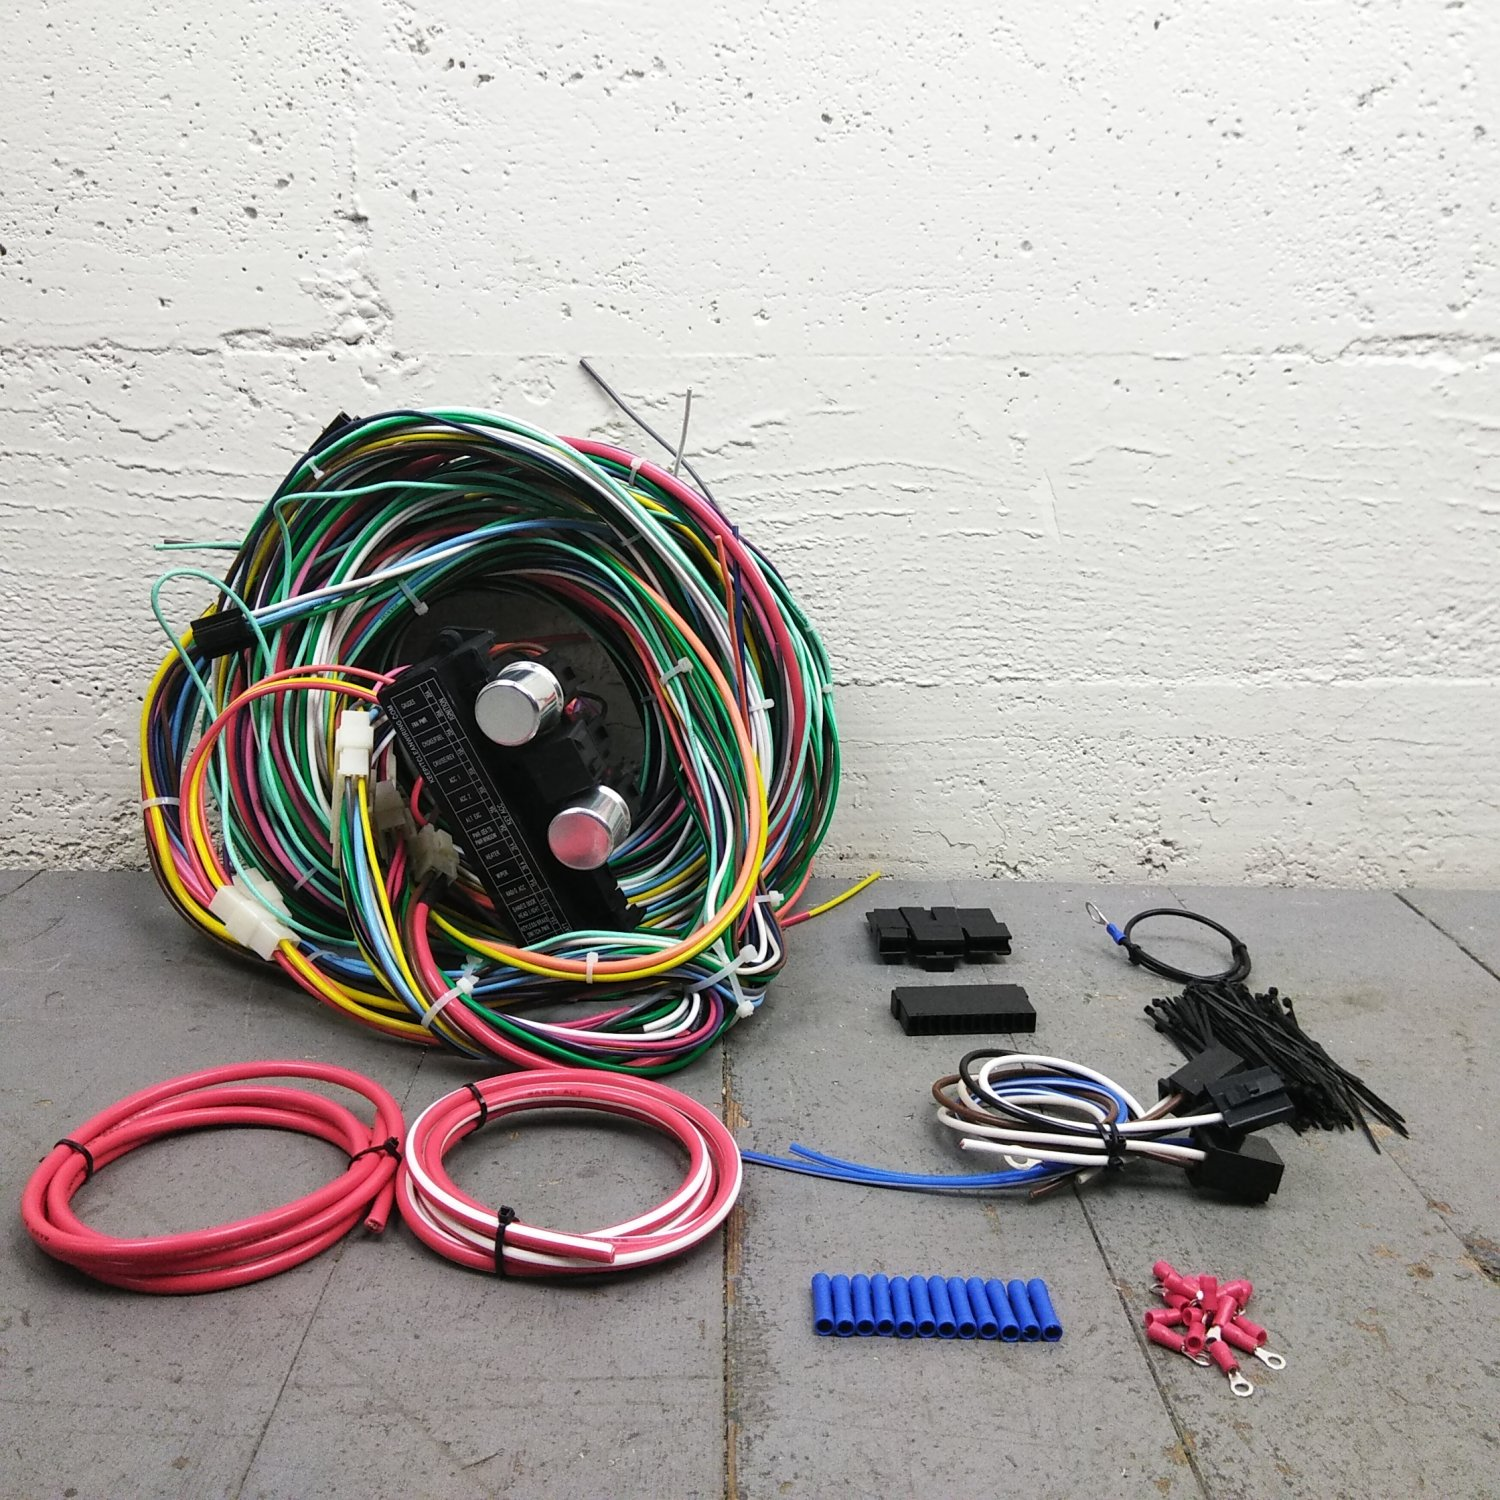 1961 - 1966 Ford Truck & Econoline Van Wire Harness Upgrade Kit fits  painless. Bar_Product_Description_C